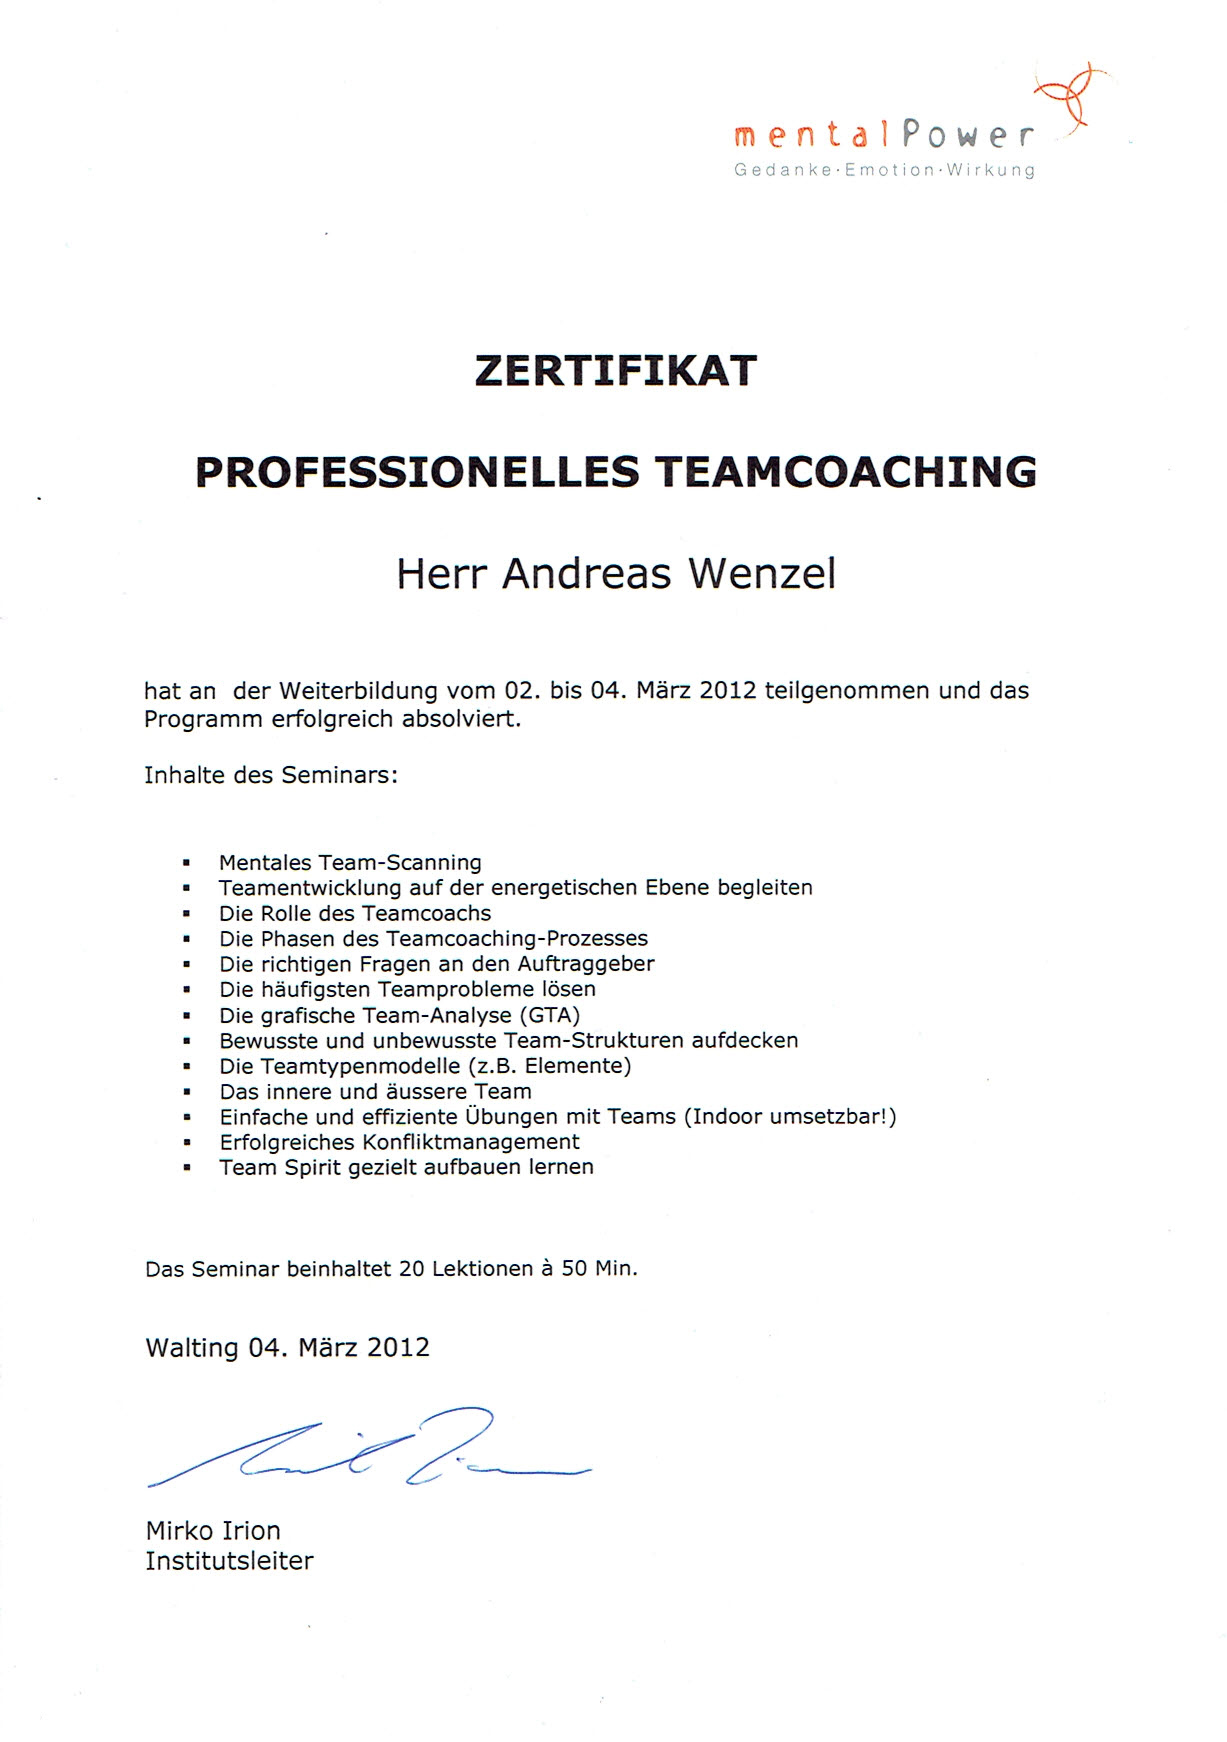 Professionelles Teamcoaching